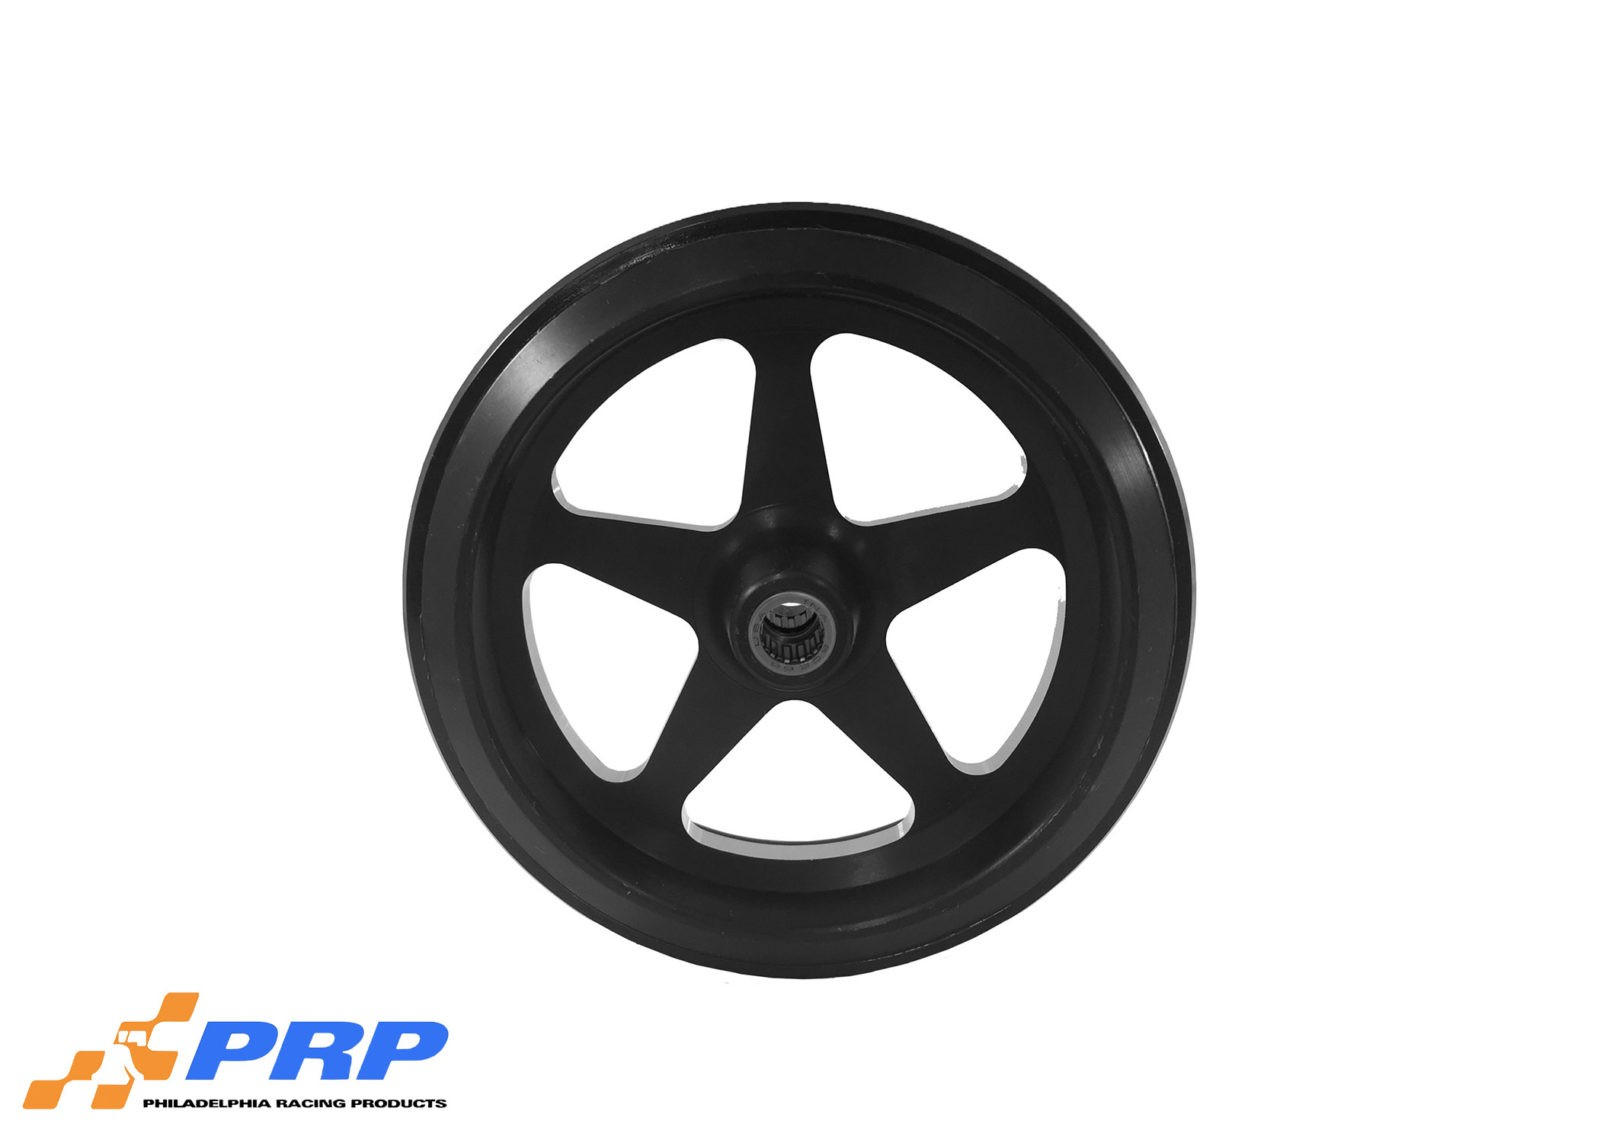 Black Anodized Star Style Wheelie Bar Wheel with Bearing made by PRP Racing Products